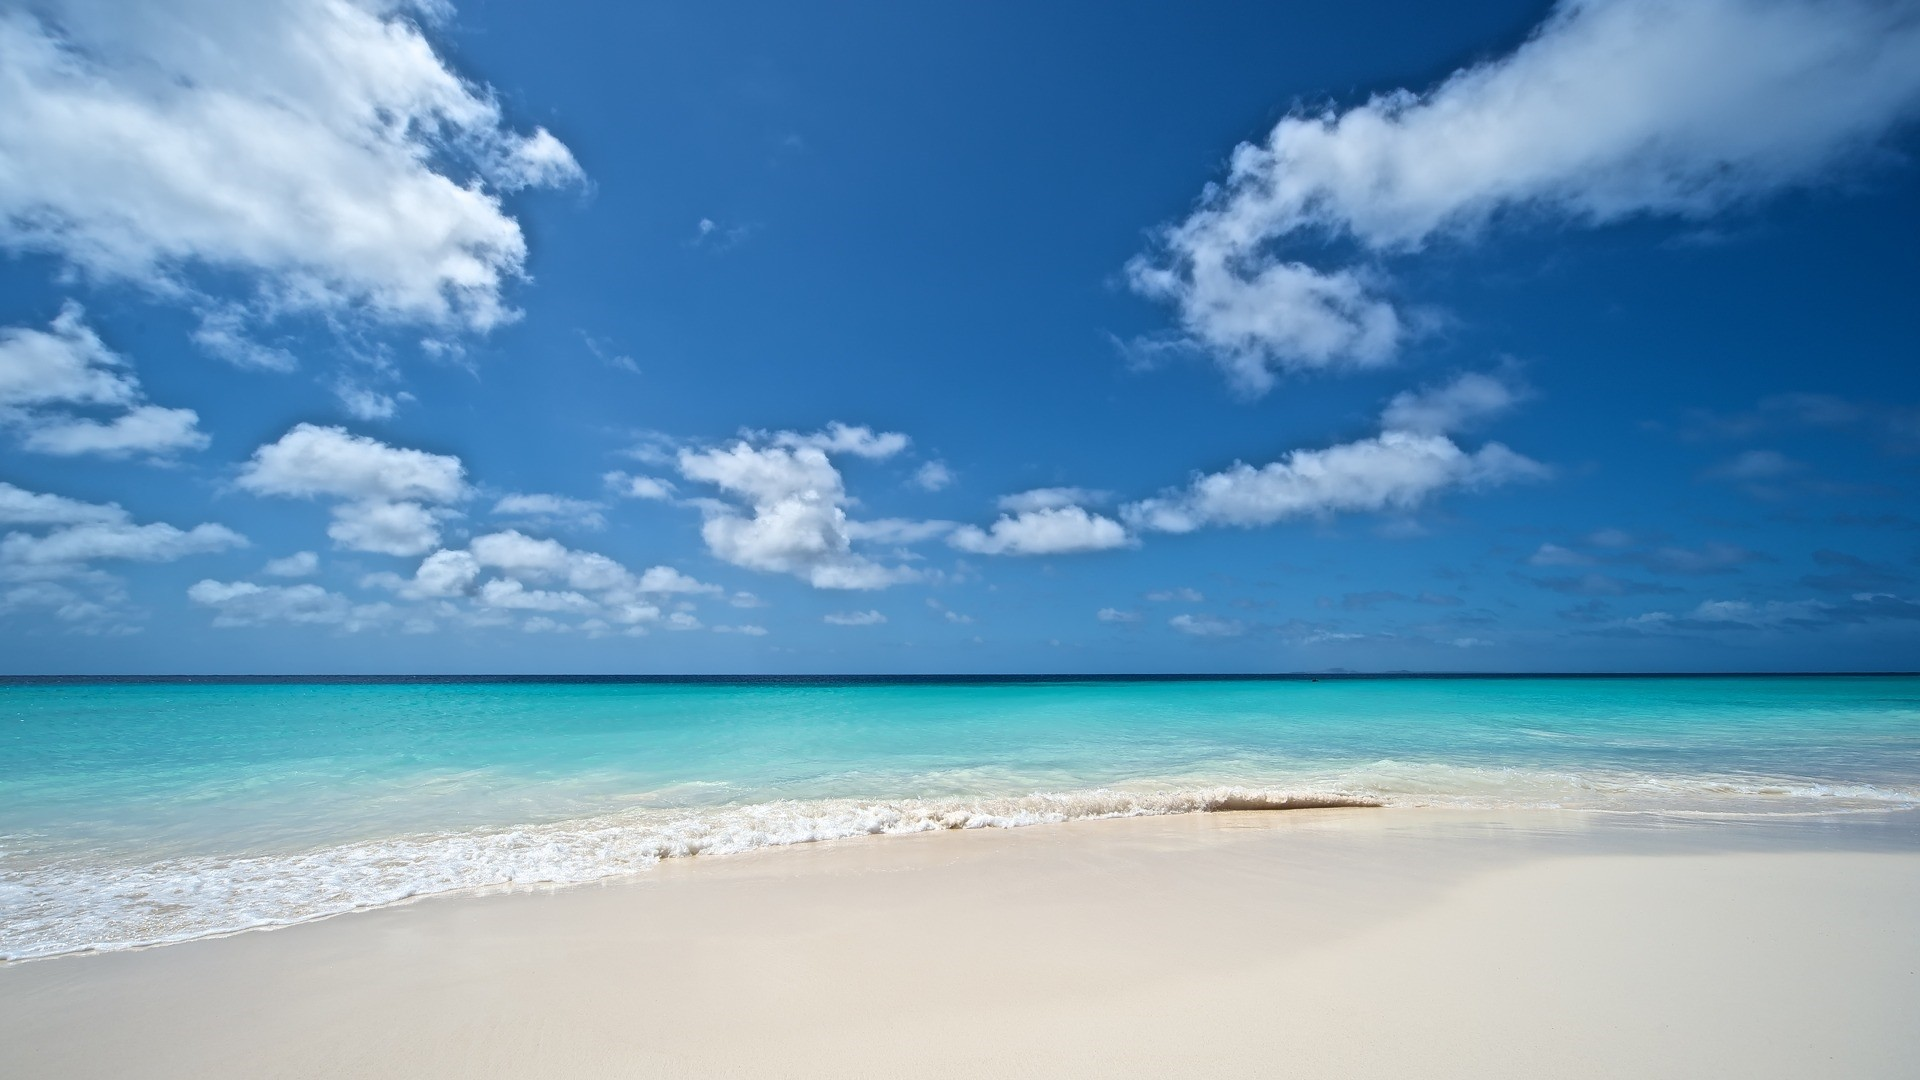 Sea White Sand Wallpaper